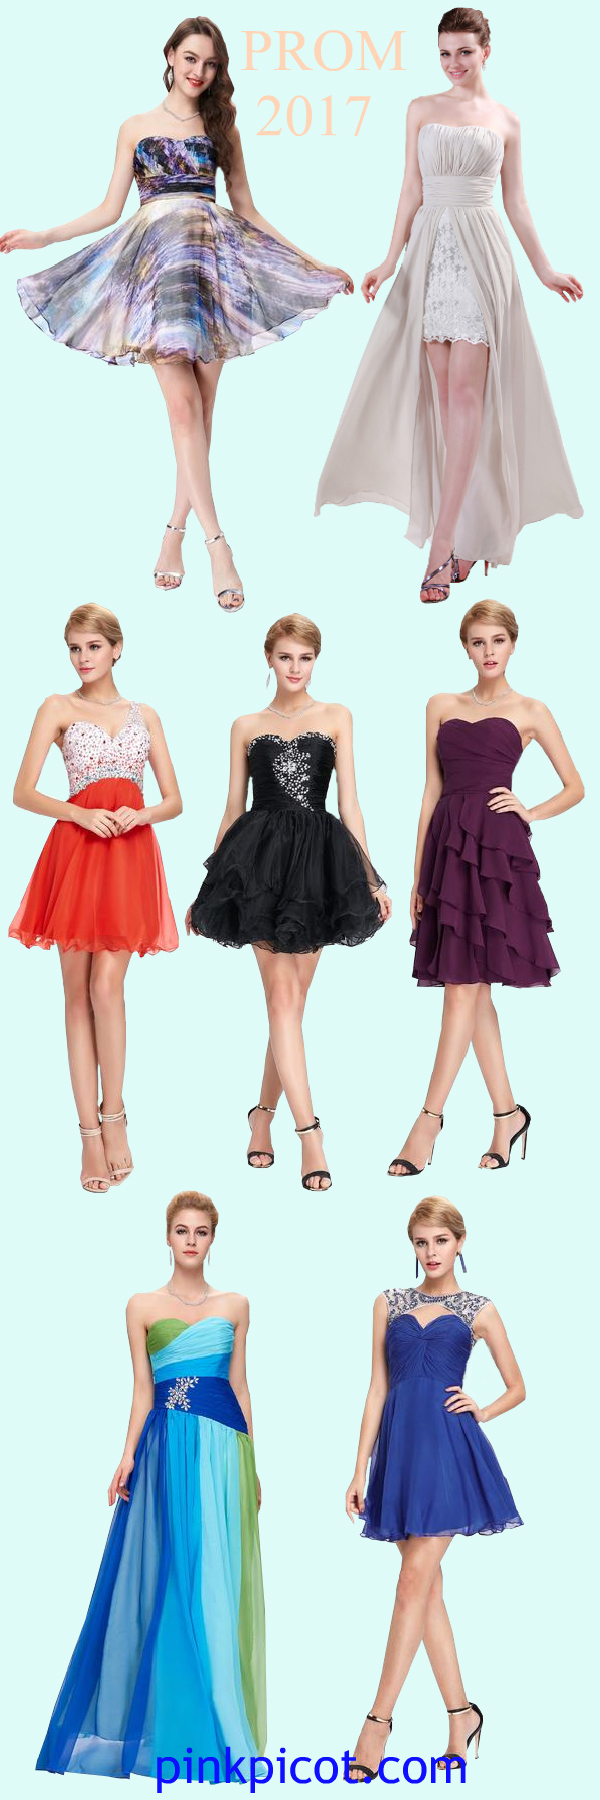 Get your dream prom dresses up to off pinkpicot gowns